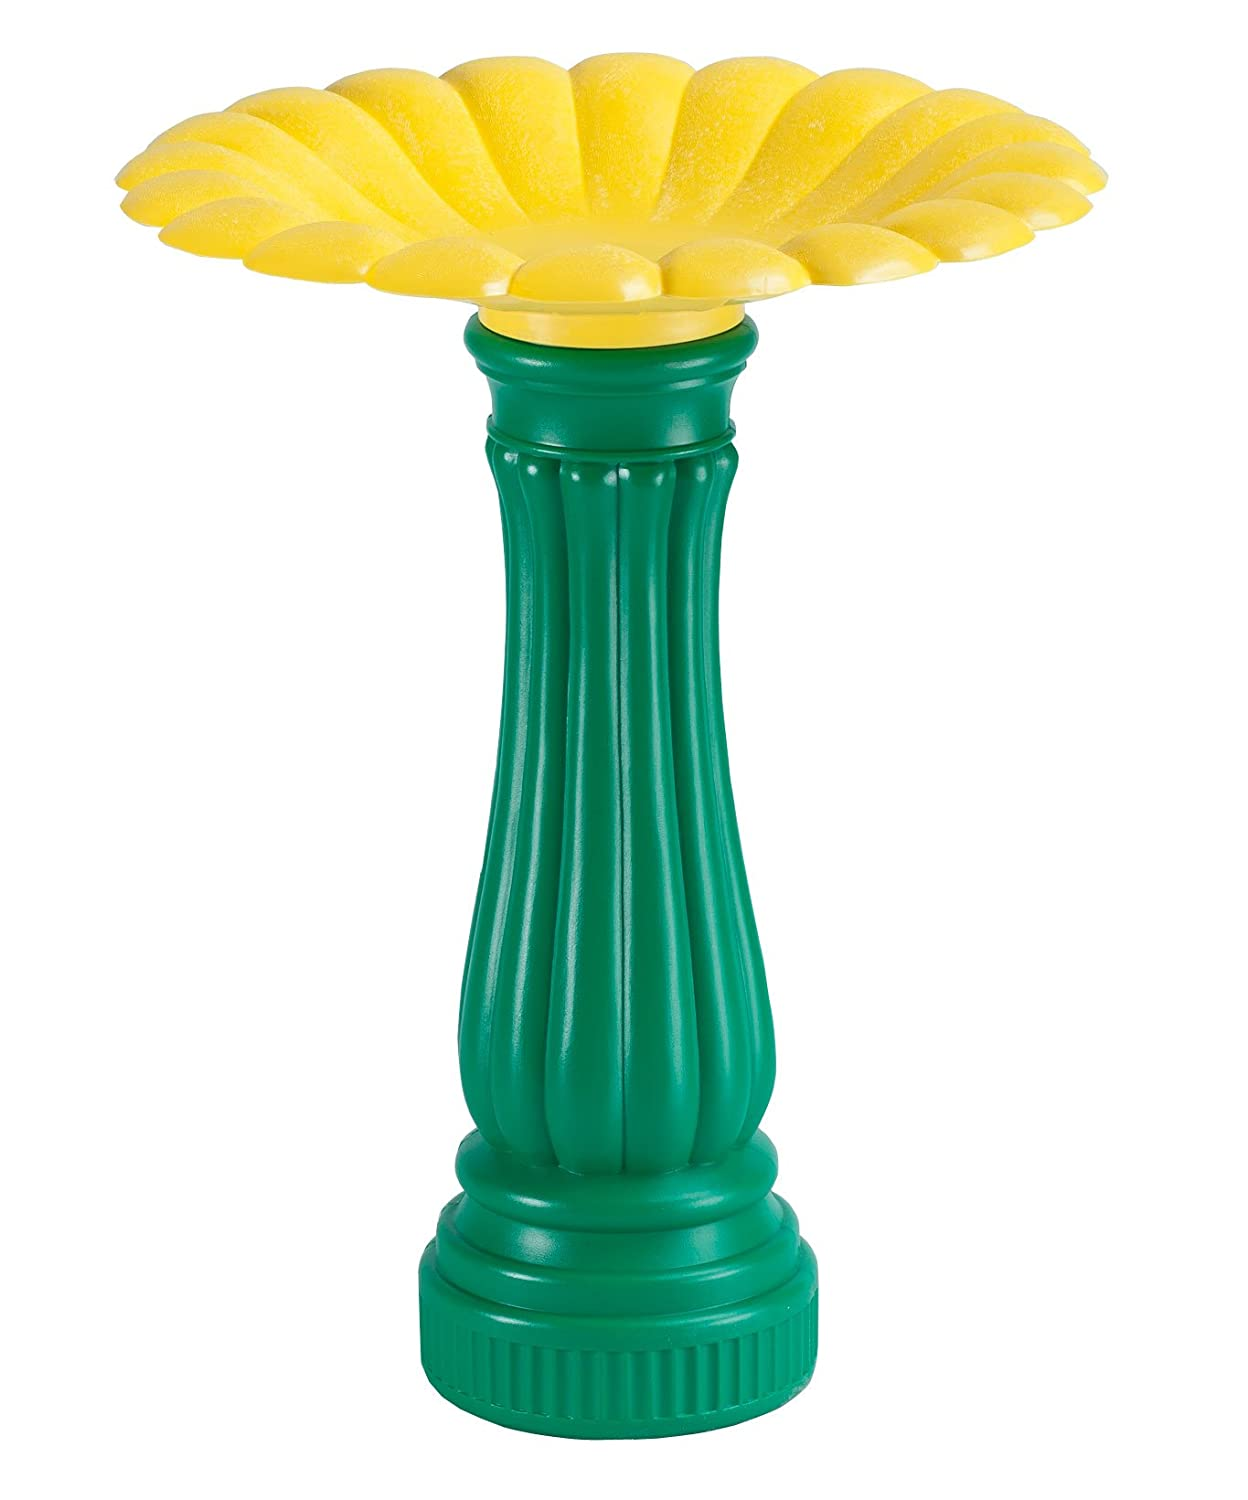 Miles Kimball Daisy Bird Bath, One Size Fits All, Green and Yellow